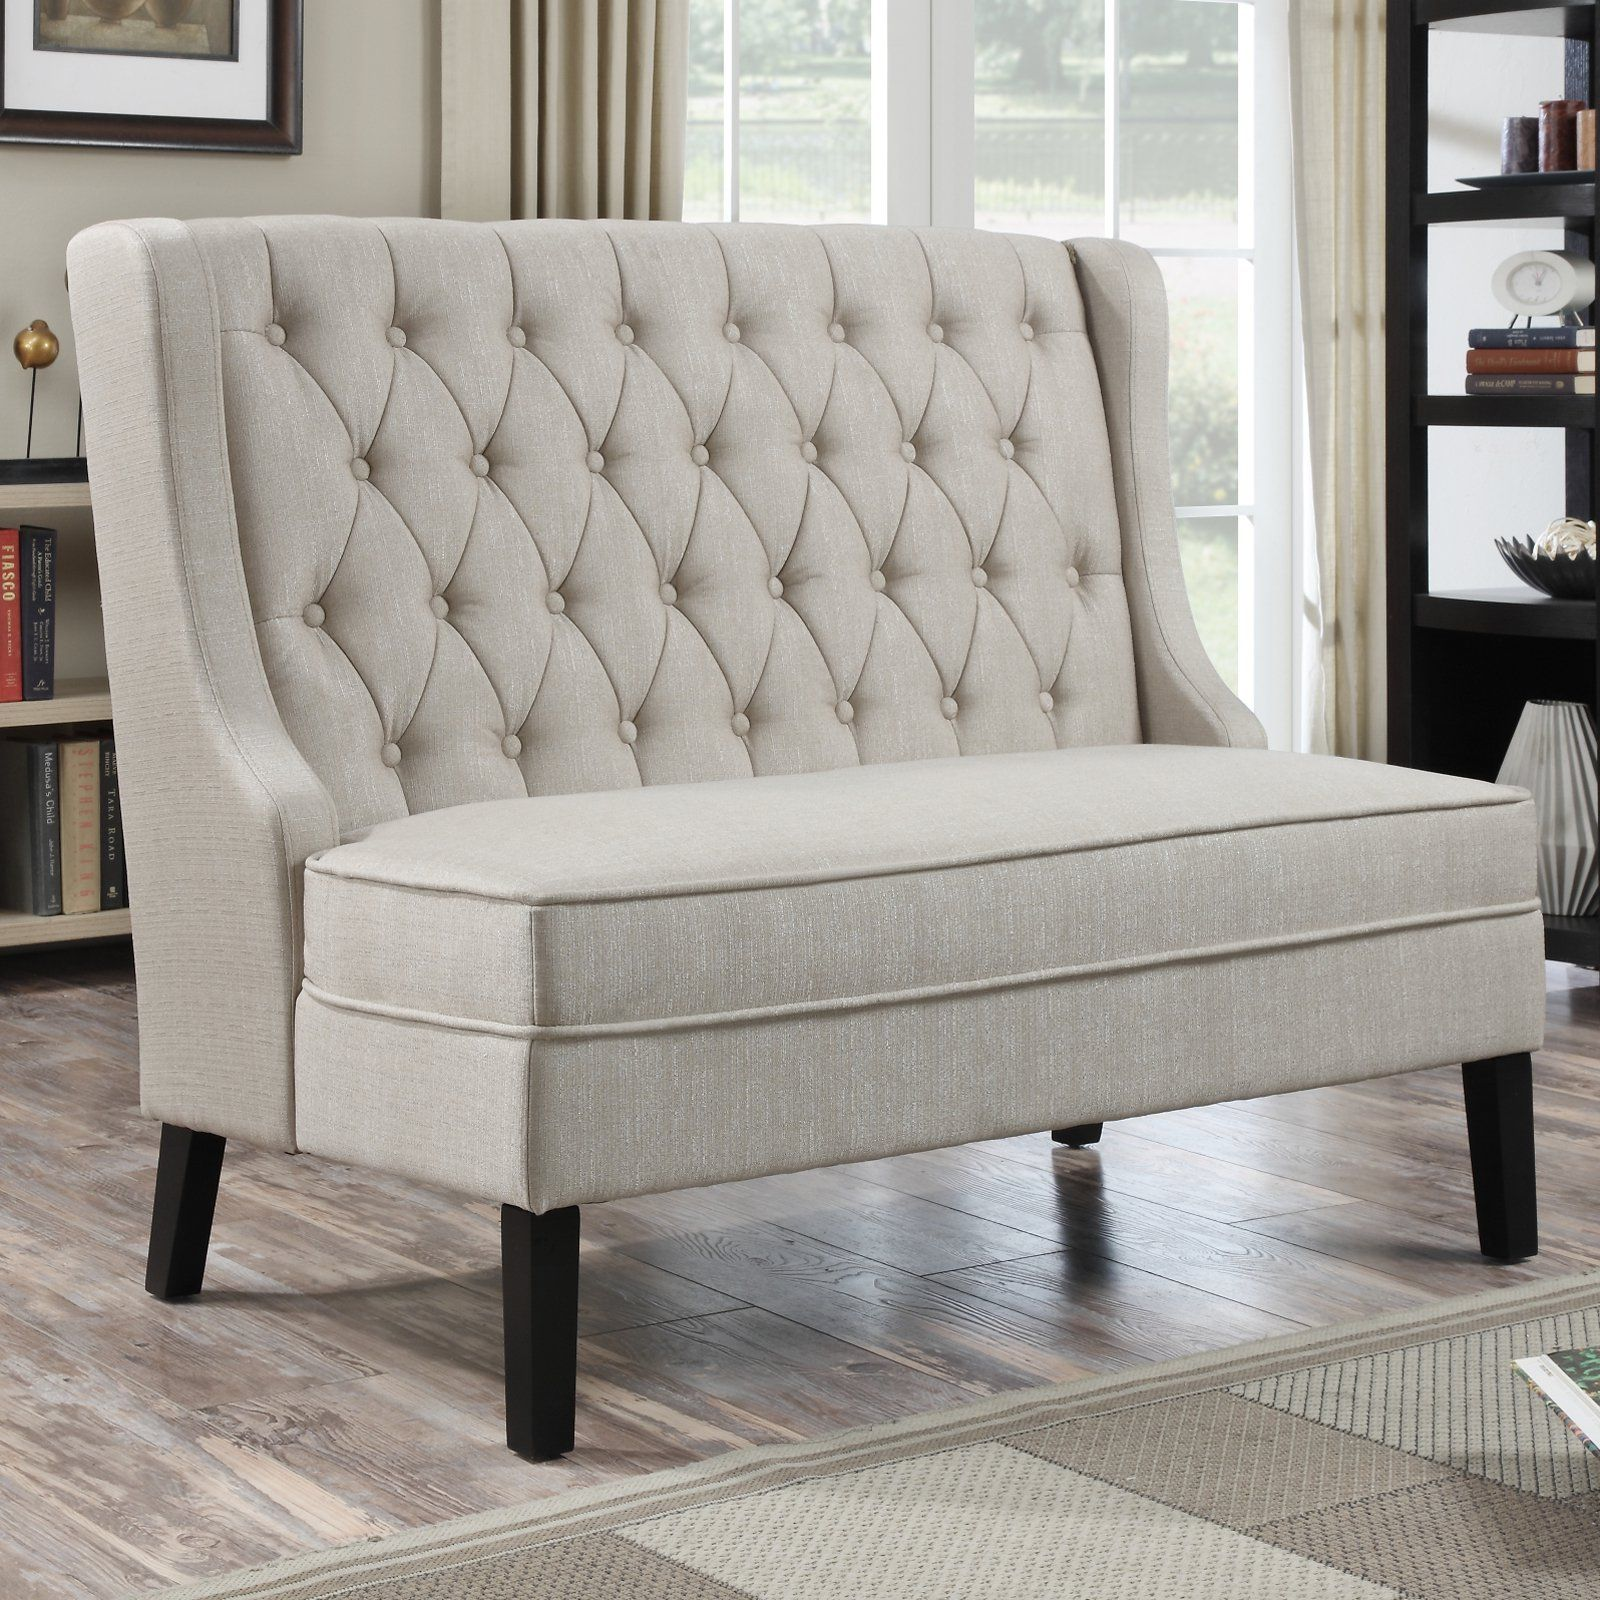 Home Meridian Banquette Bench Tuxedo Oatmeal DS2187